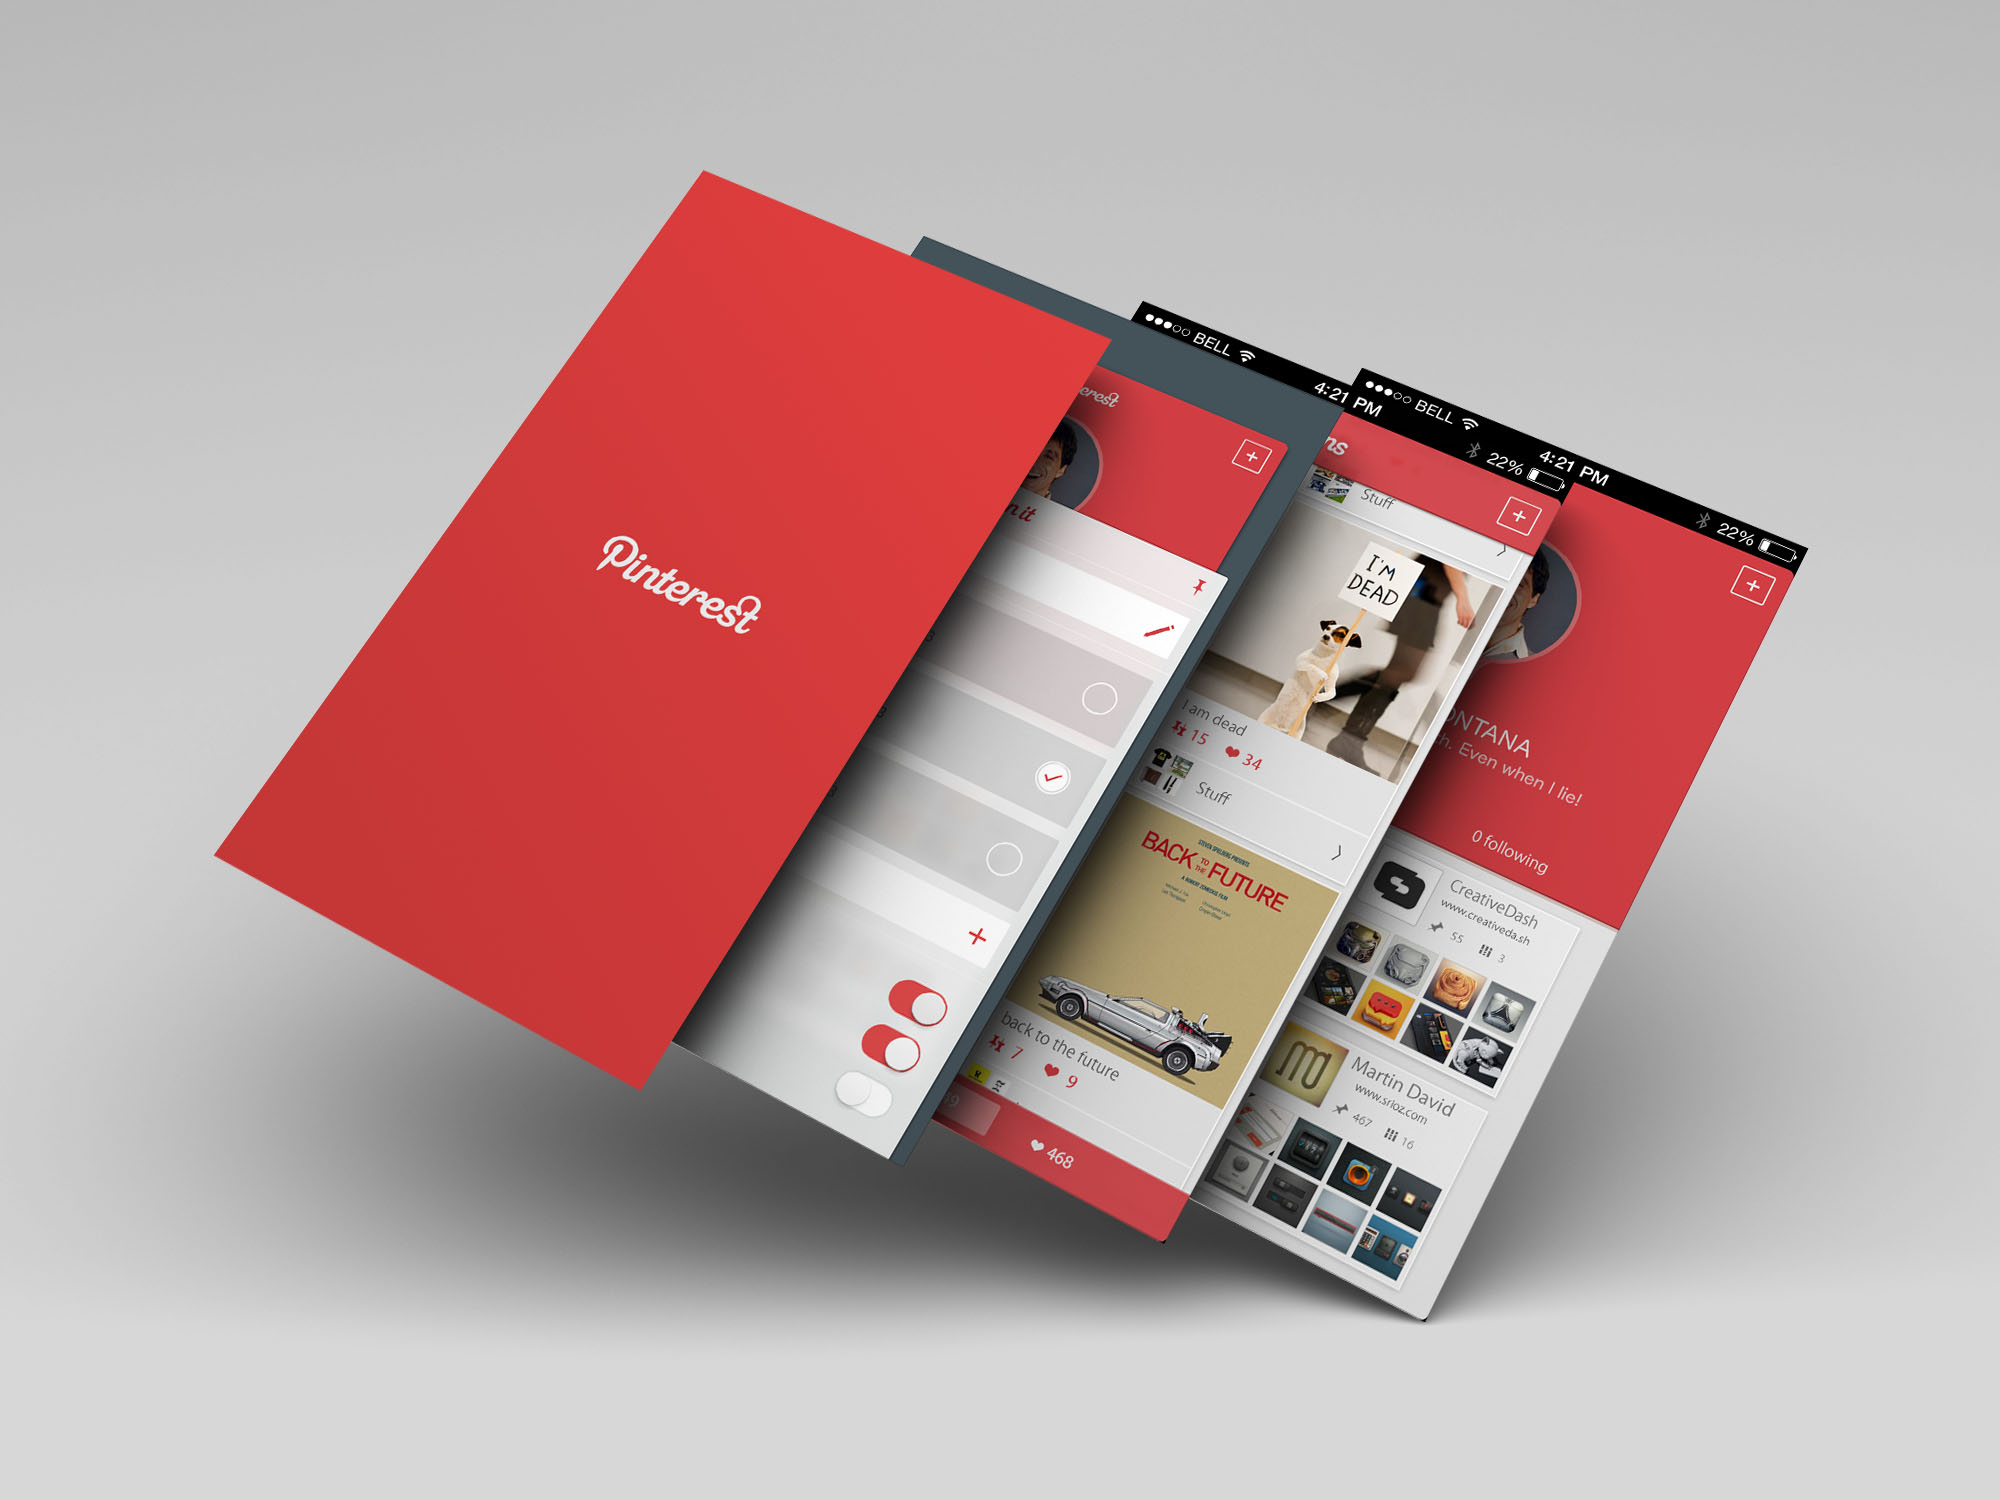 interior design apps 5 Free Interior Design Apps You Should Use in 2017 5 Free Interior Design Apps You Should Use in 2017 8